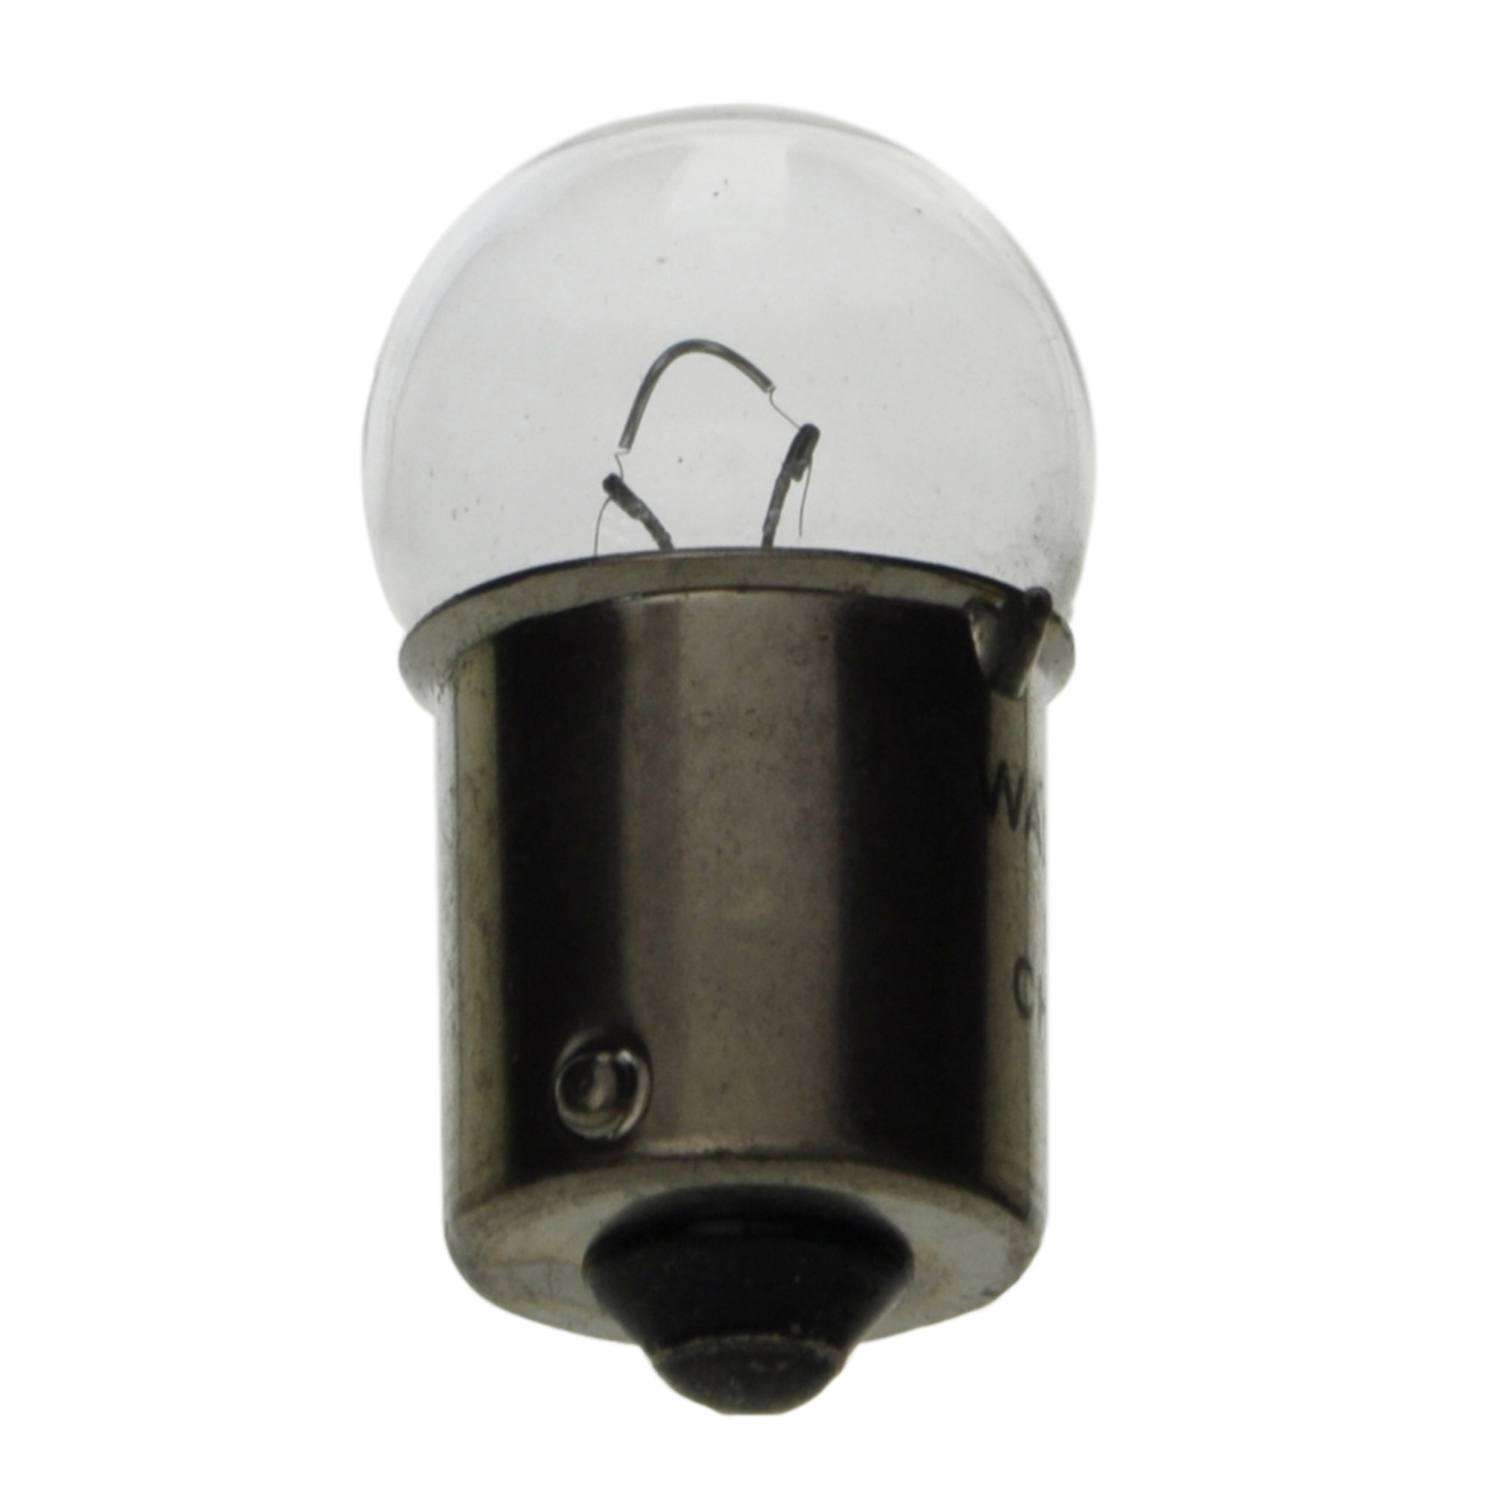 WAGNER LIGHTING - License Light Bulb - WLP 67